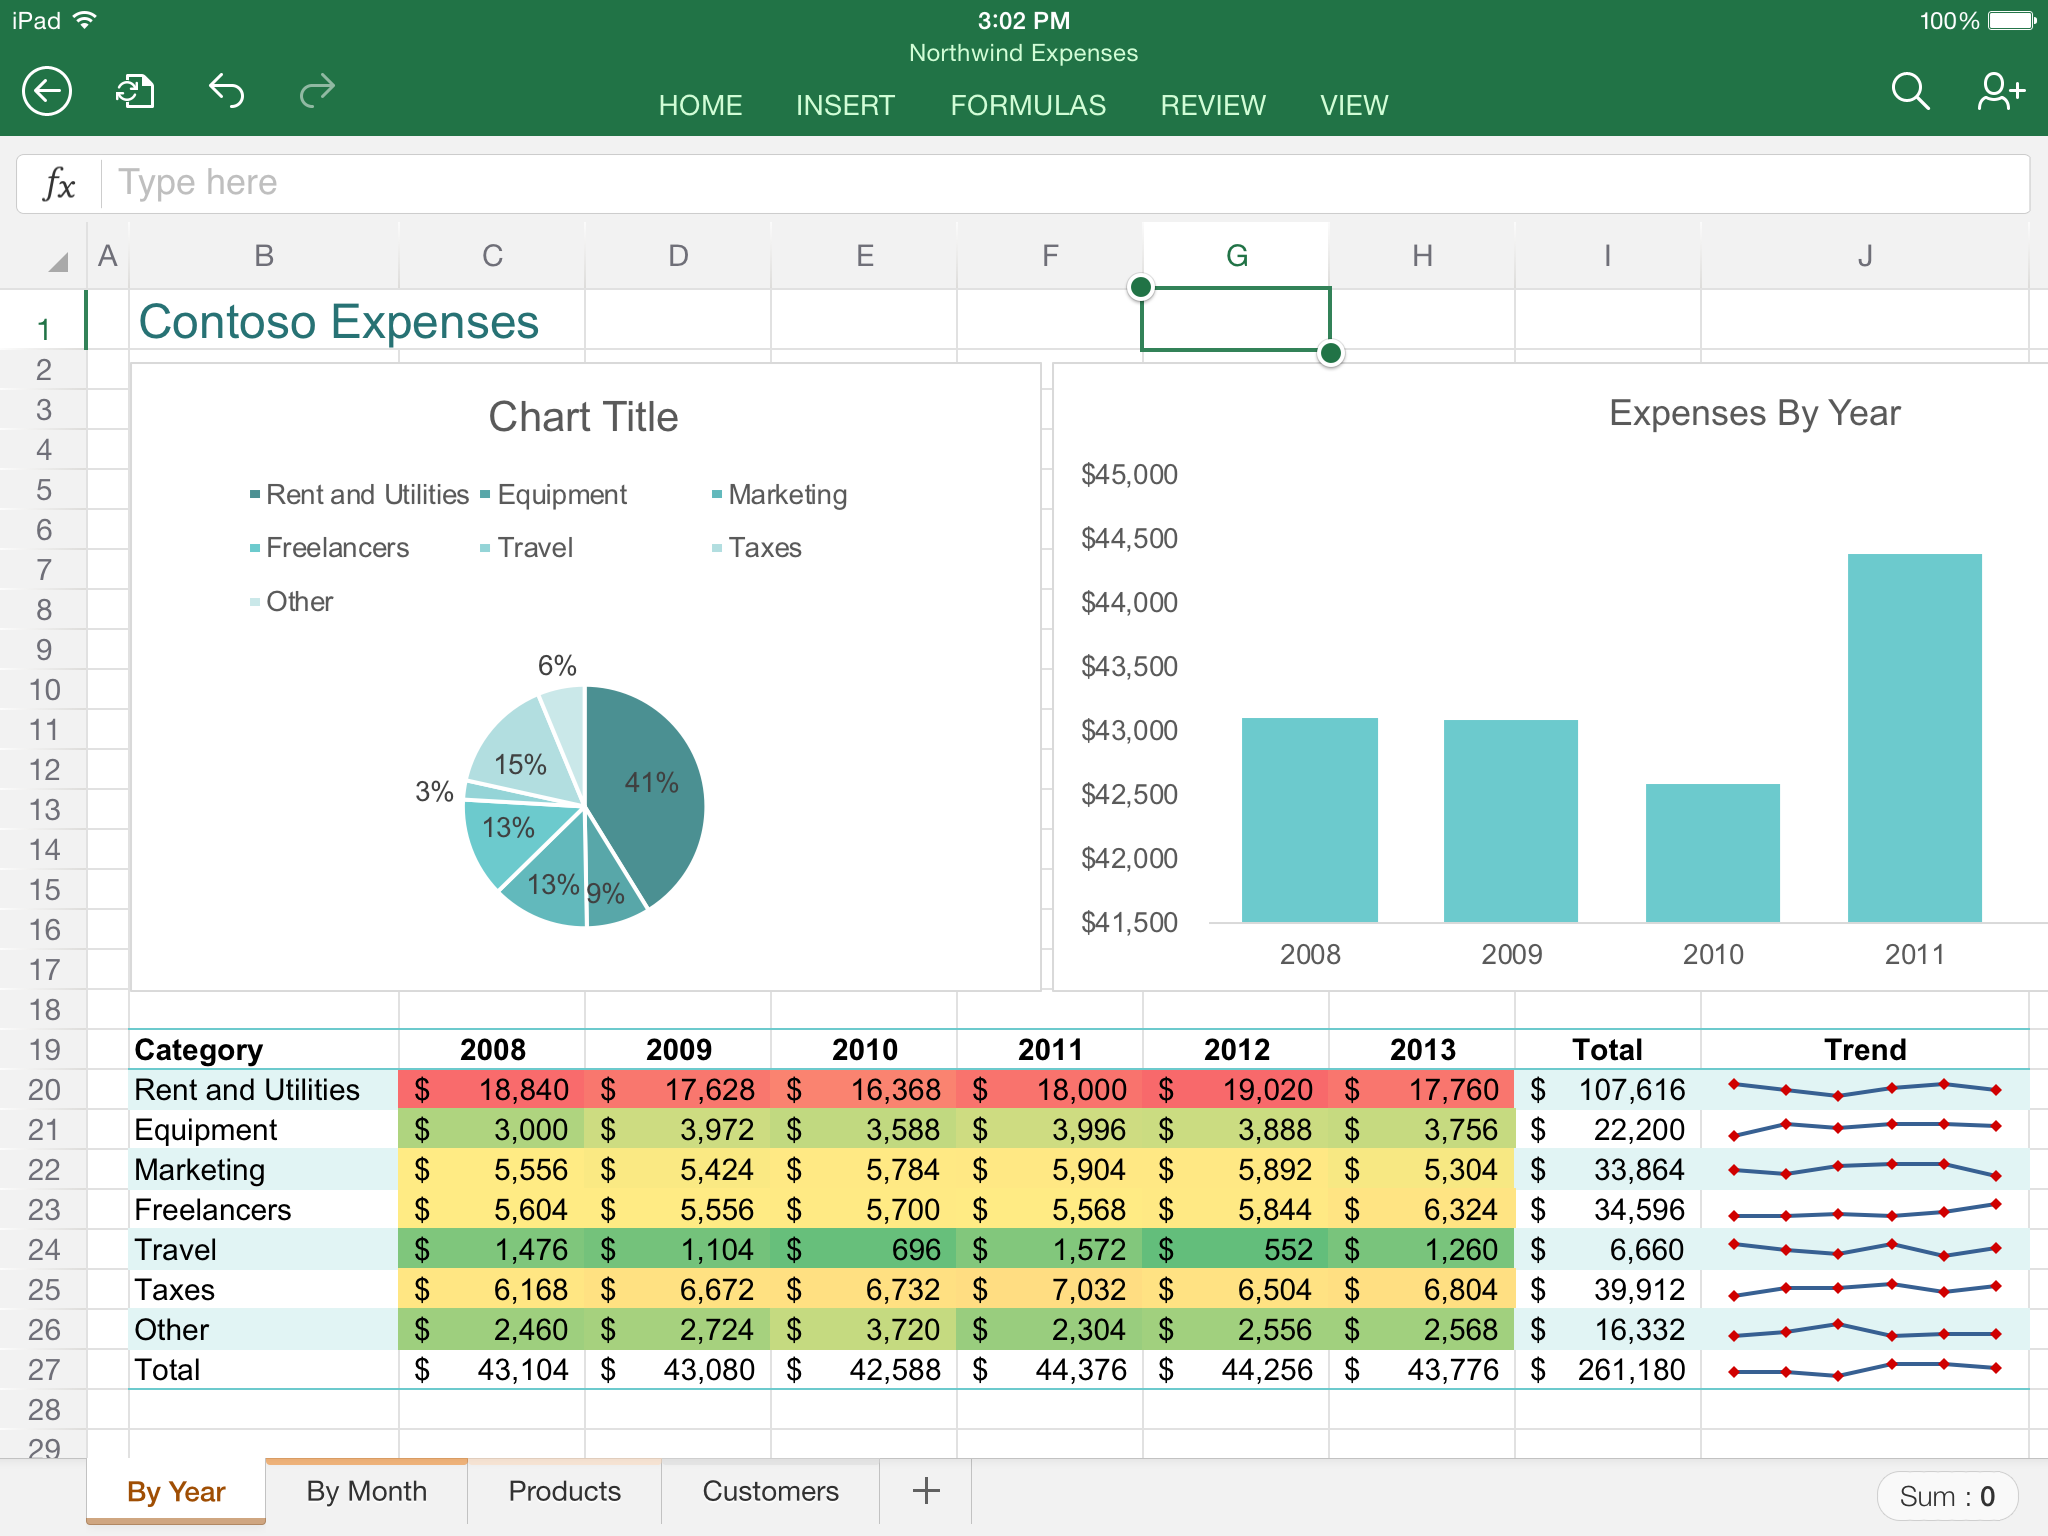 Ediblewildsus  Mesmerizing App Highlight Excel  Mobile Digital Now With Hot Excel In Action With Beauteous Excel Round To Nearest  Also Free Budget Template Excel In Addition One Sample T Test Excel And Merging Excel Spreadsheets As Well As Formula For Date In Excel Additionally Excel Split Text From Youstonybrookedu With Ediblewildsus  Hot App Highlight Excel  Mobile Digital Now With Beauteous Excel In Action And Mesmerizing Excel Round To Nearest  Also Free Budget Template Excel In Addition One Sample T Test Excel From Youstonybrookedu